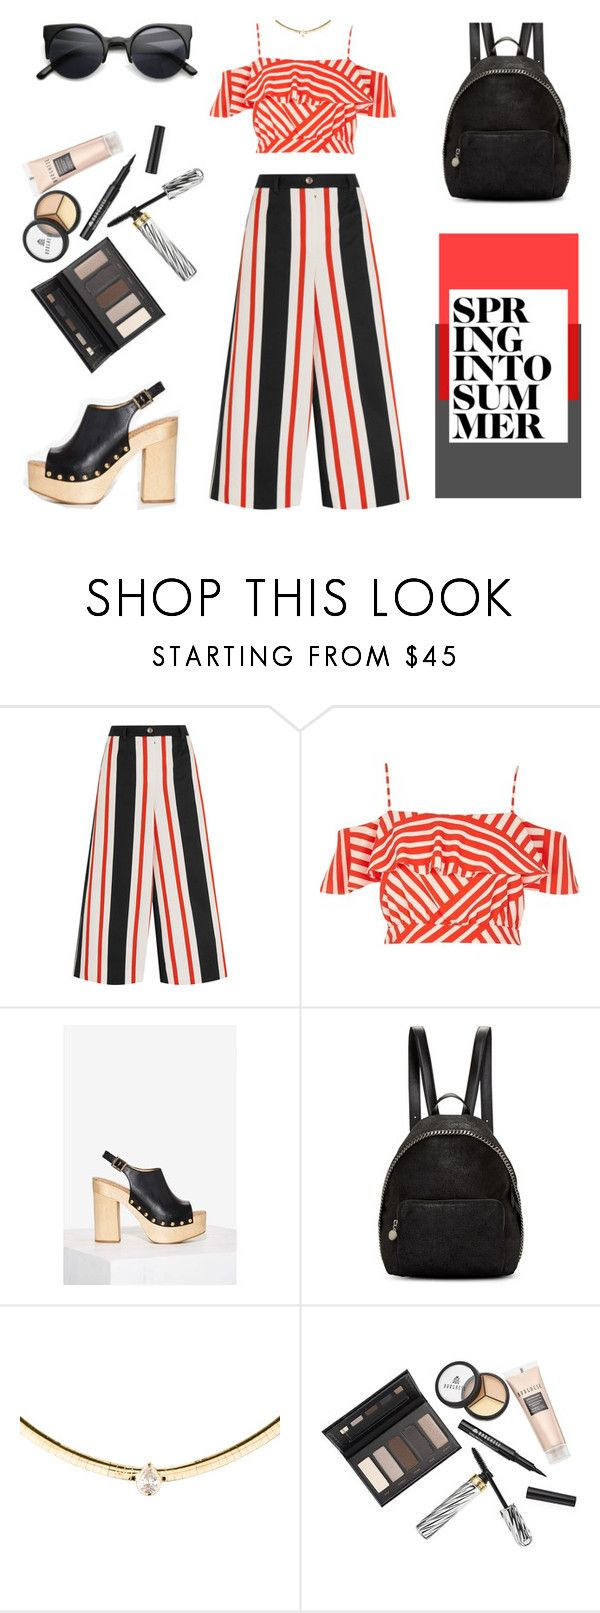 """""""""""It's much better to do good in a way that no one knows anything about."""" -   Leo Tolstoy, 'Anna Karenina'"""" by punkrockmeansfreedom ❤ liked on Polyvore featuring Dolce&Gabbana, River Island, Sam Edelman, STELLA McCARTNEY, Borghese and Retrò"""